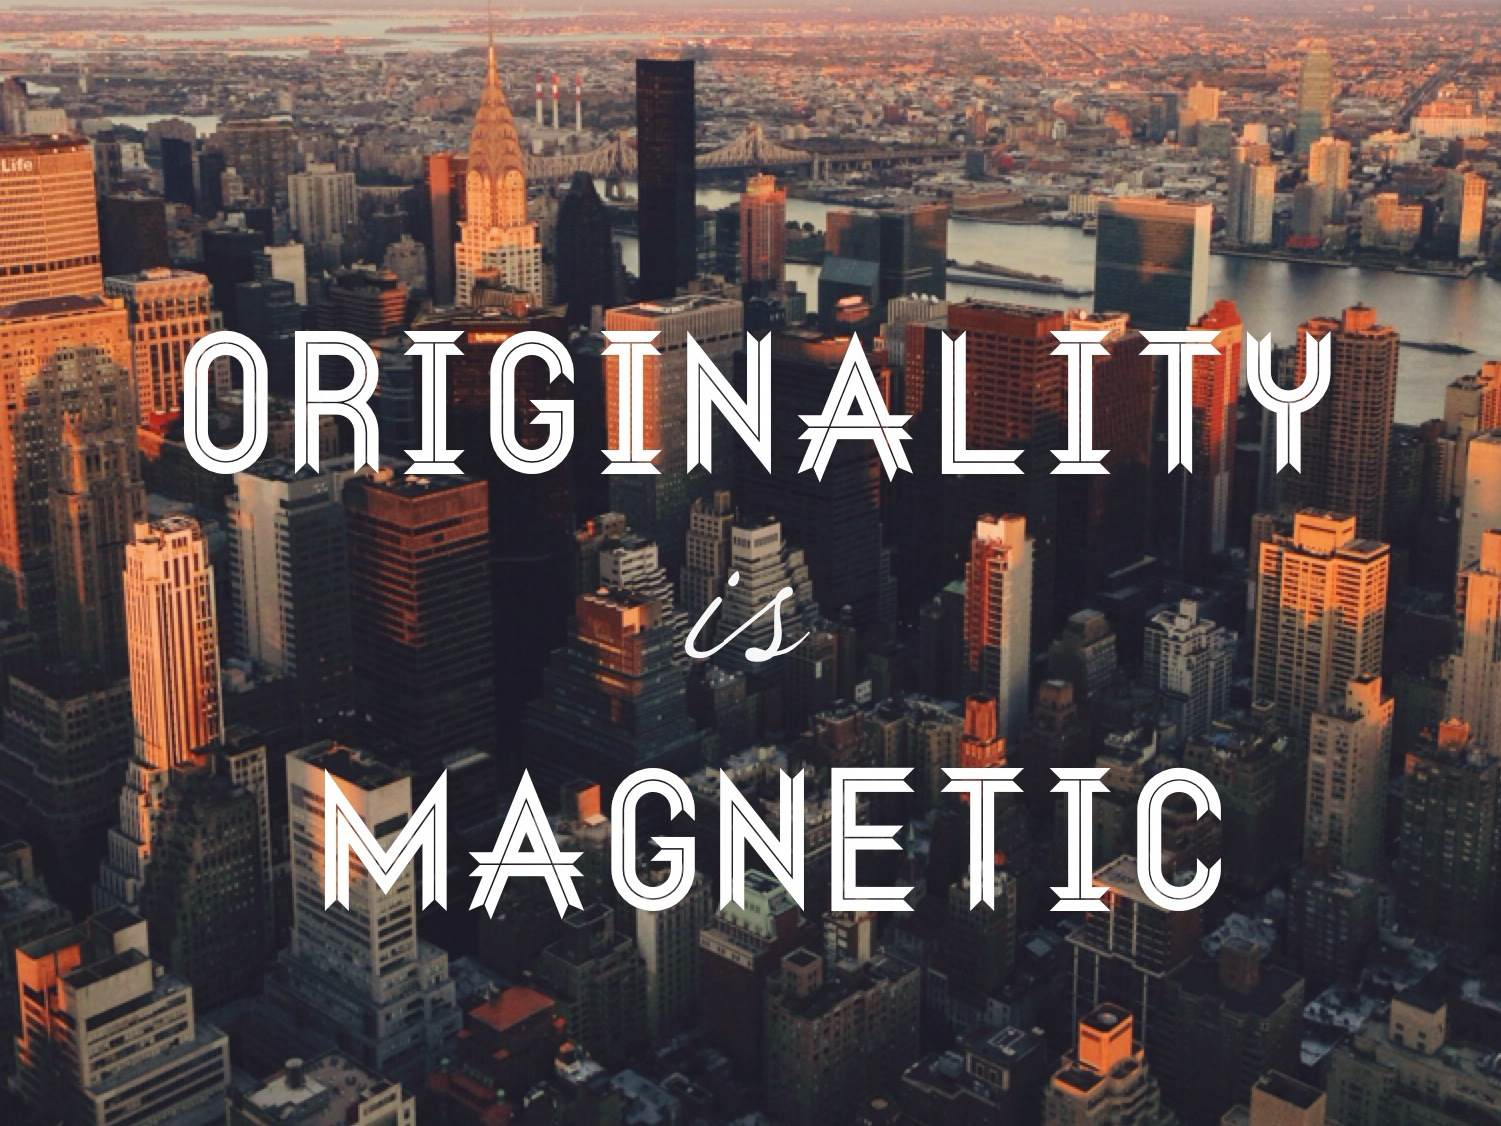 Originality is Magnetic.